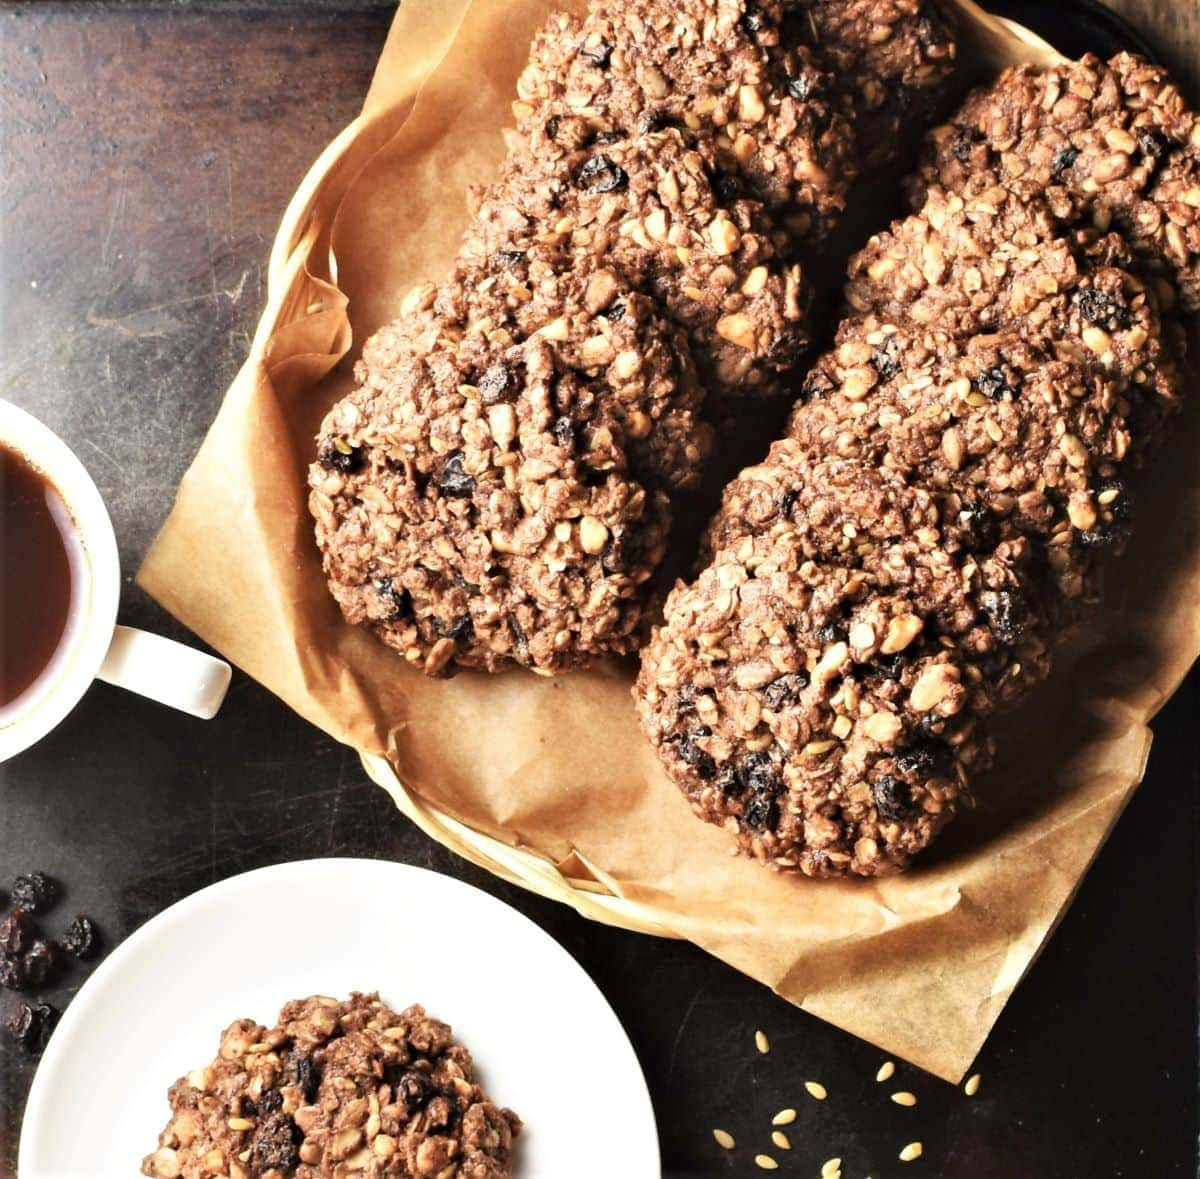 Top down view of chocolate oatmeal cookies on top of parchment and small plate.